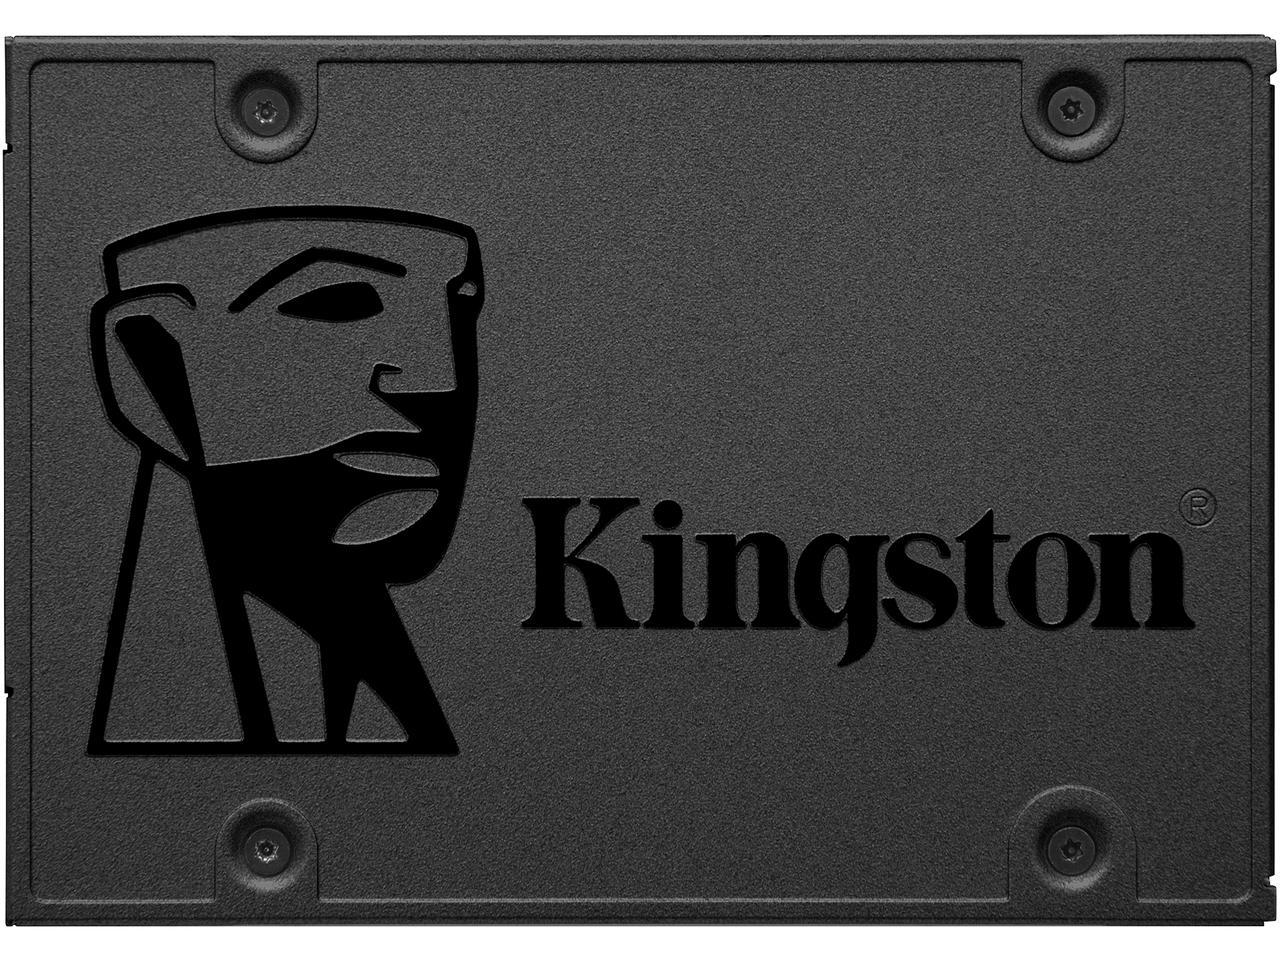 Ces 2017 Kingston A400 Ssd Becomes The New Entry Level Sata Drive Now Uv400 Series 240gb Suv400s37 240g Performance Endurance Pricing